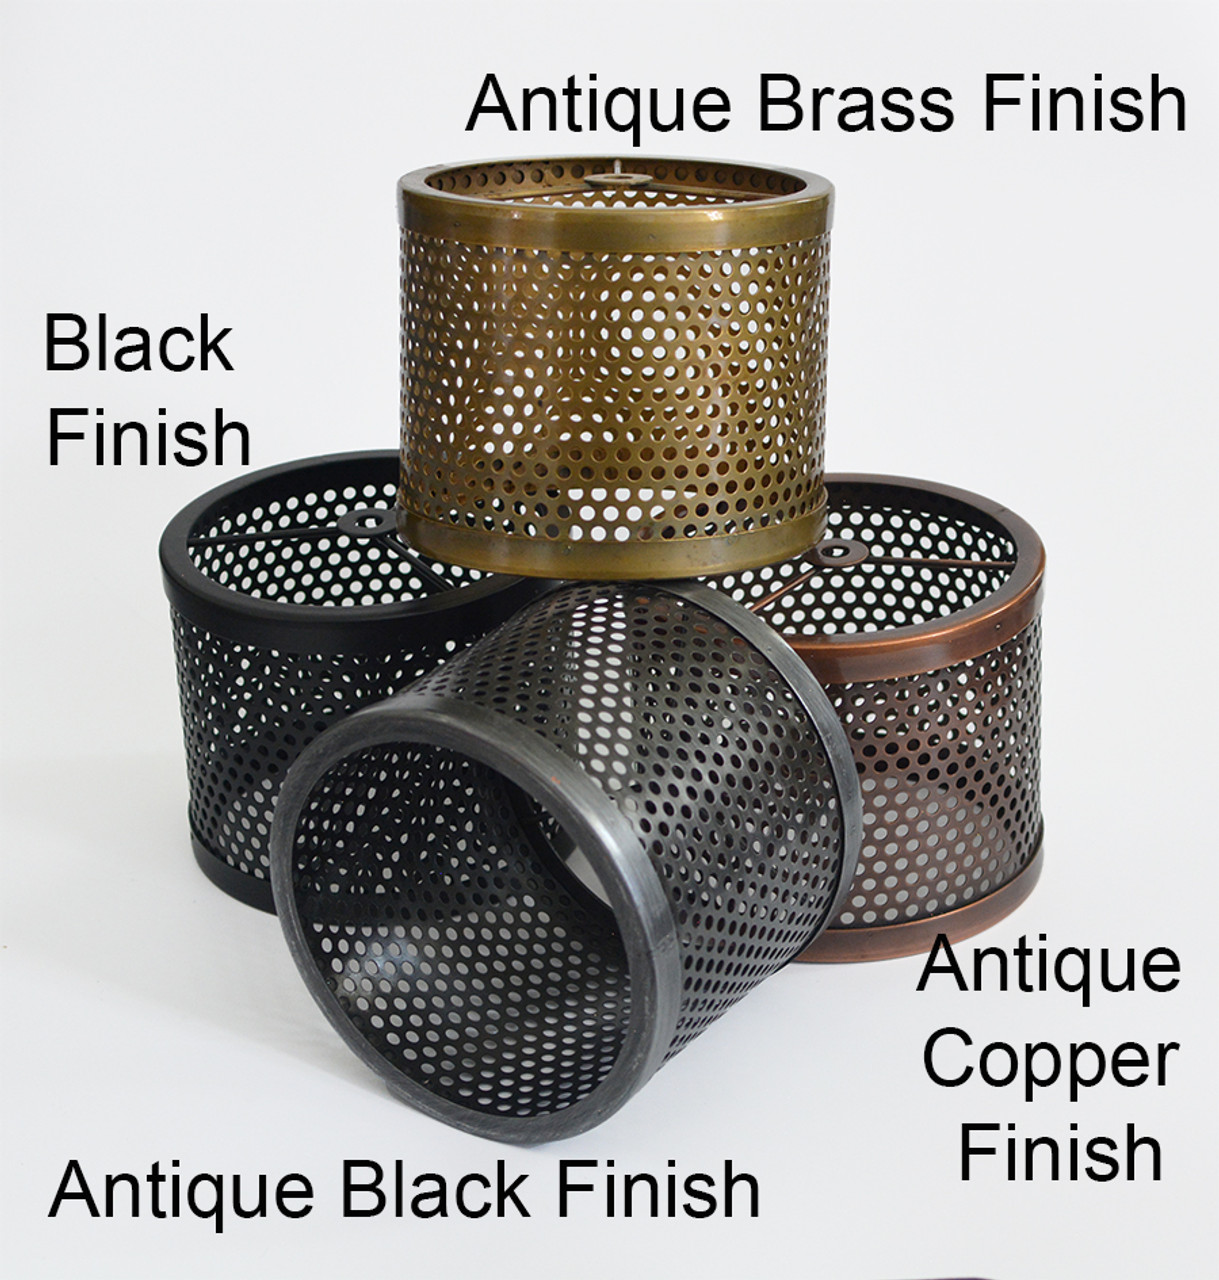 6 Perforated Metal Shade Antique Brass Finish